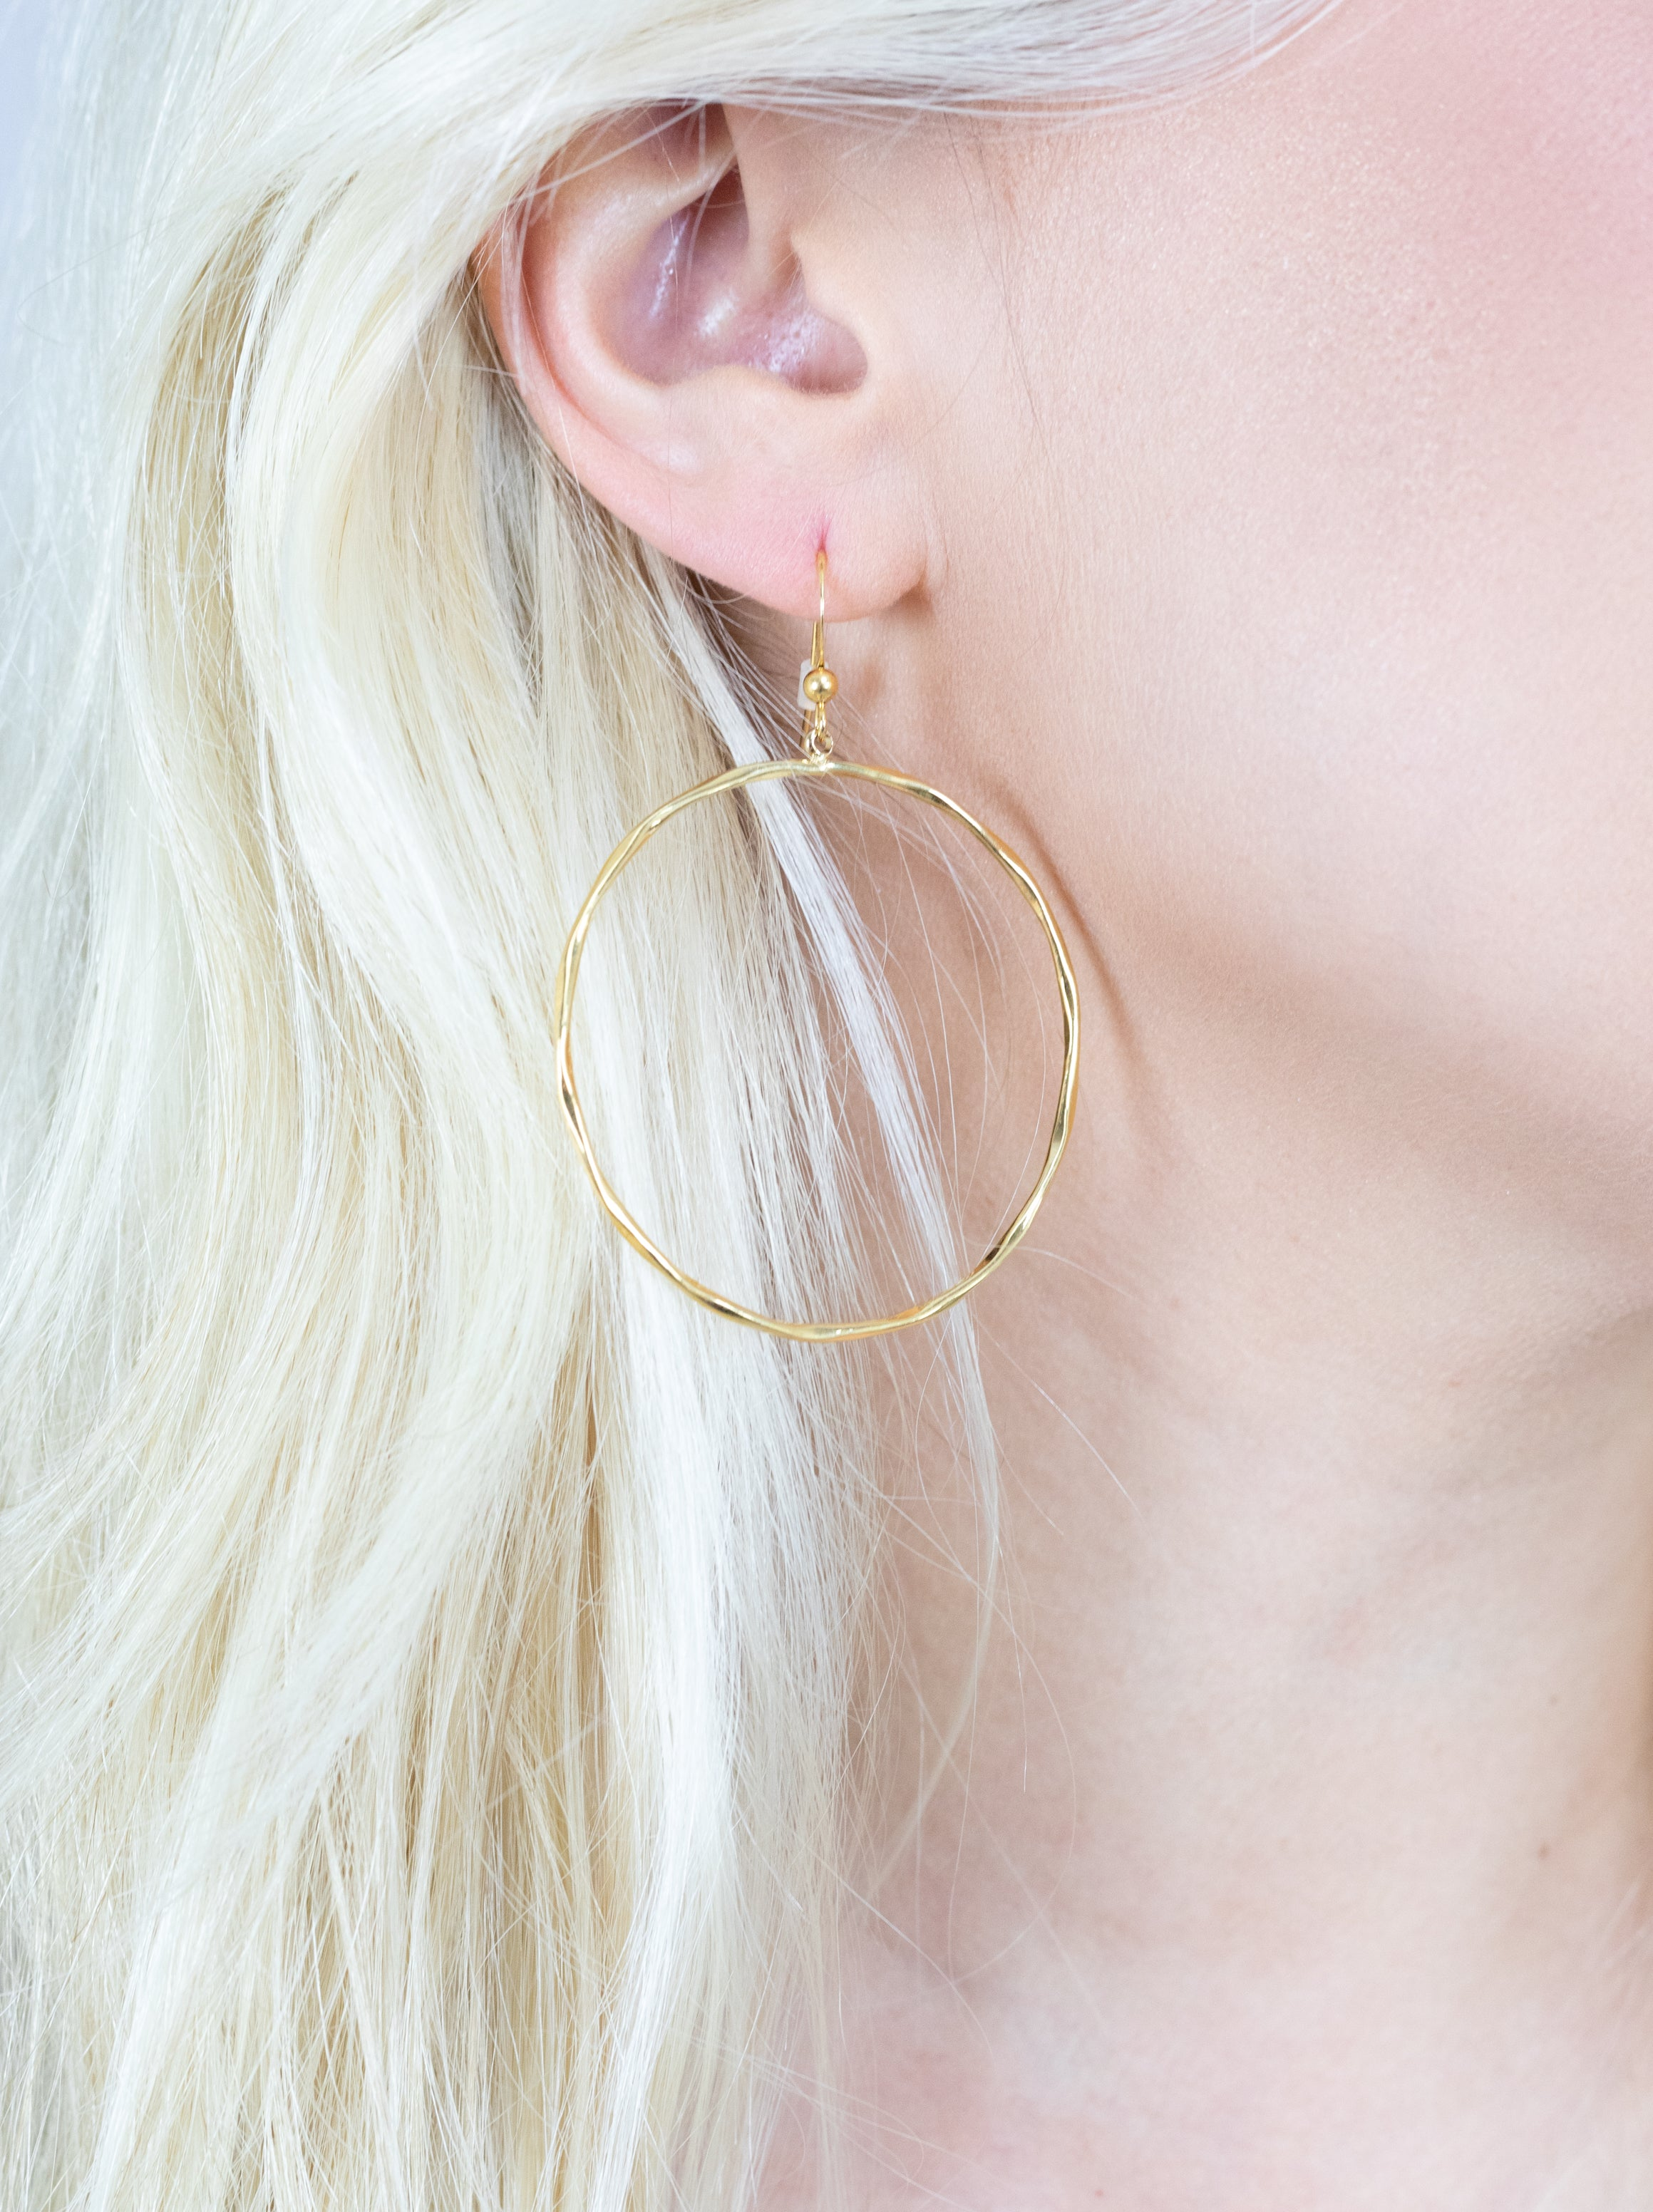 Fancy That Gold Hoop Earrings